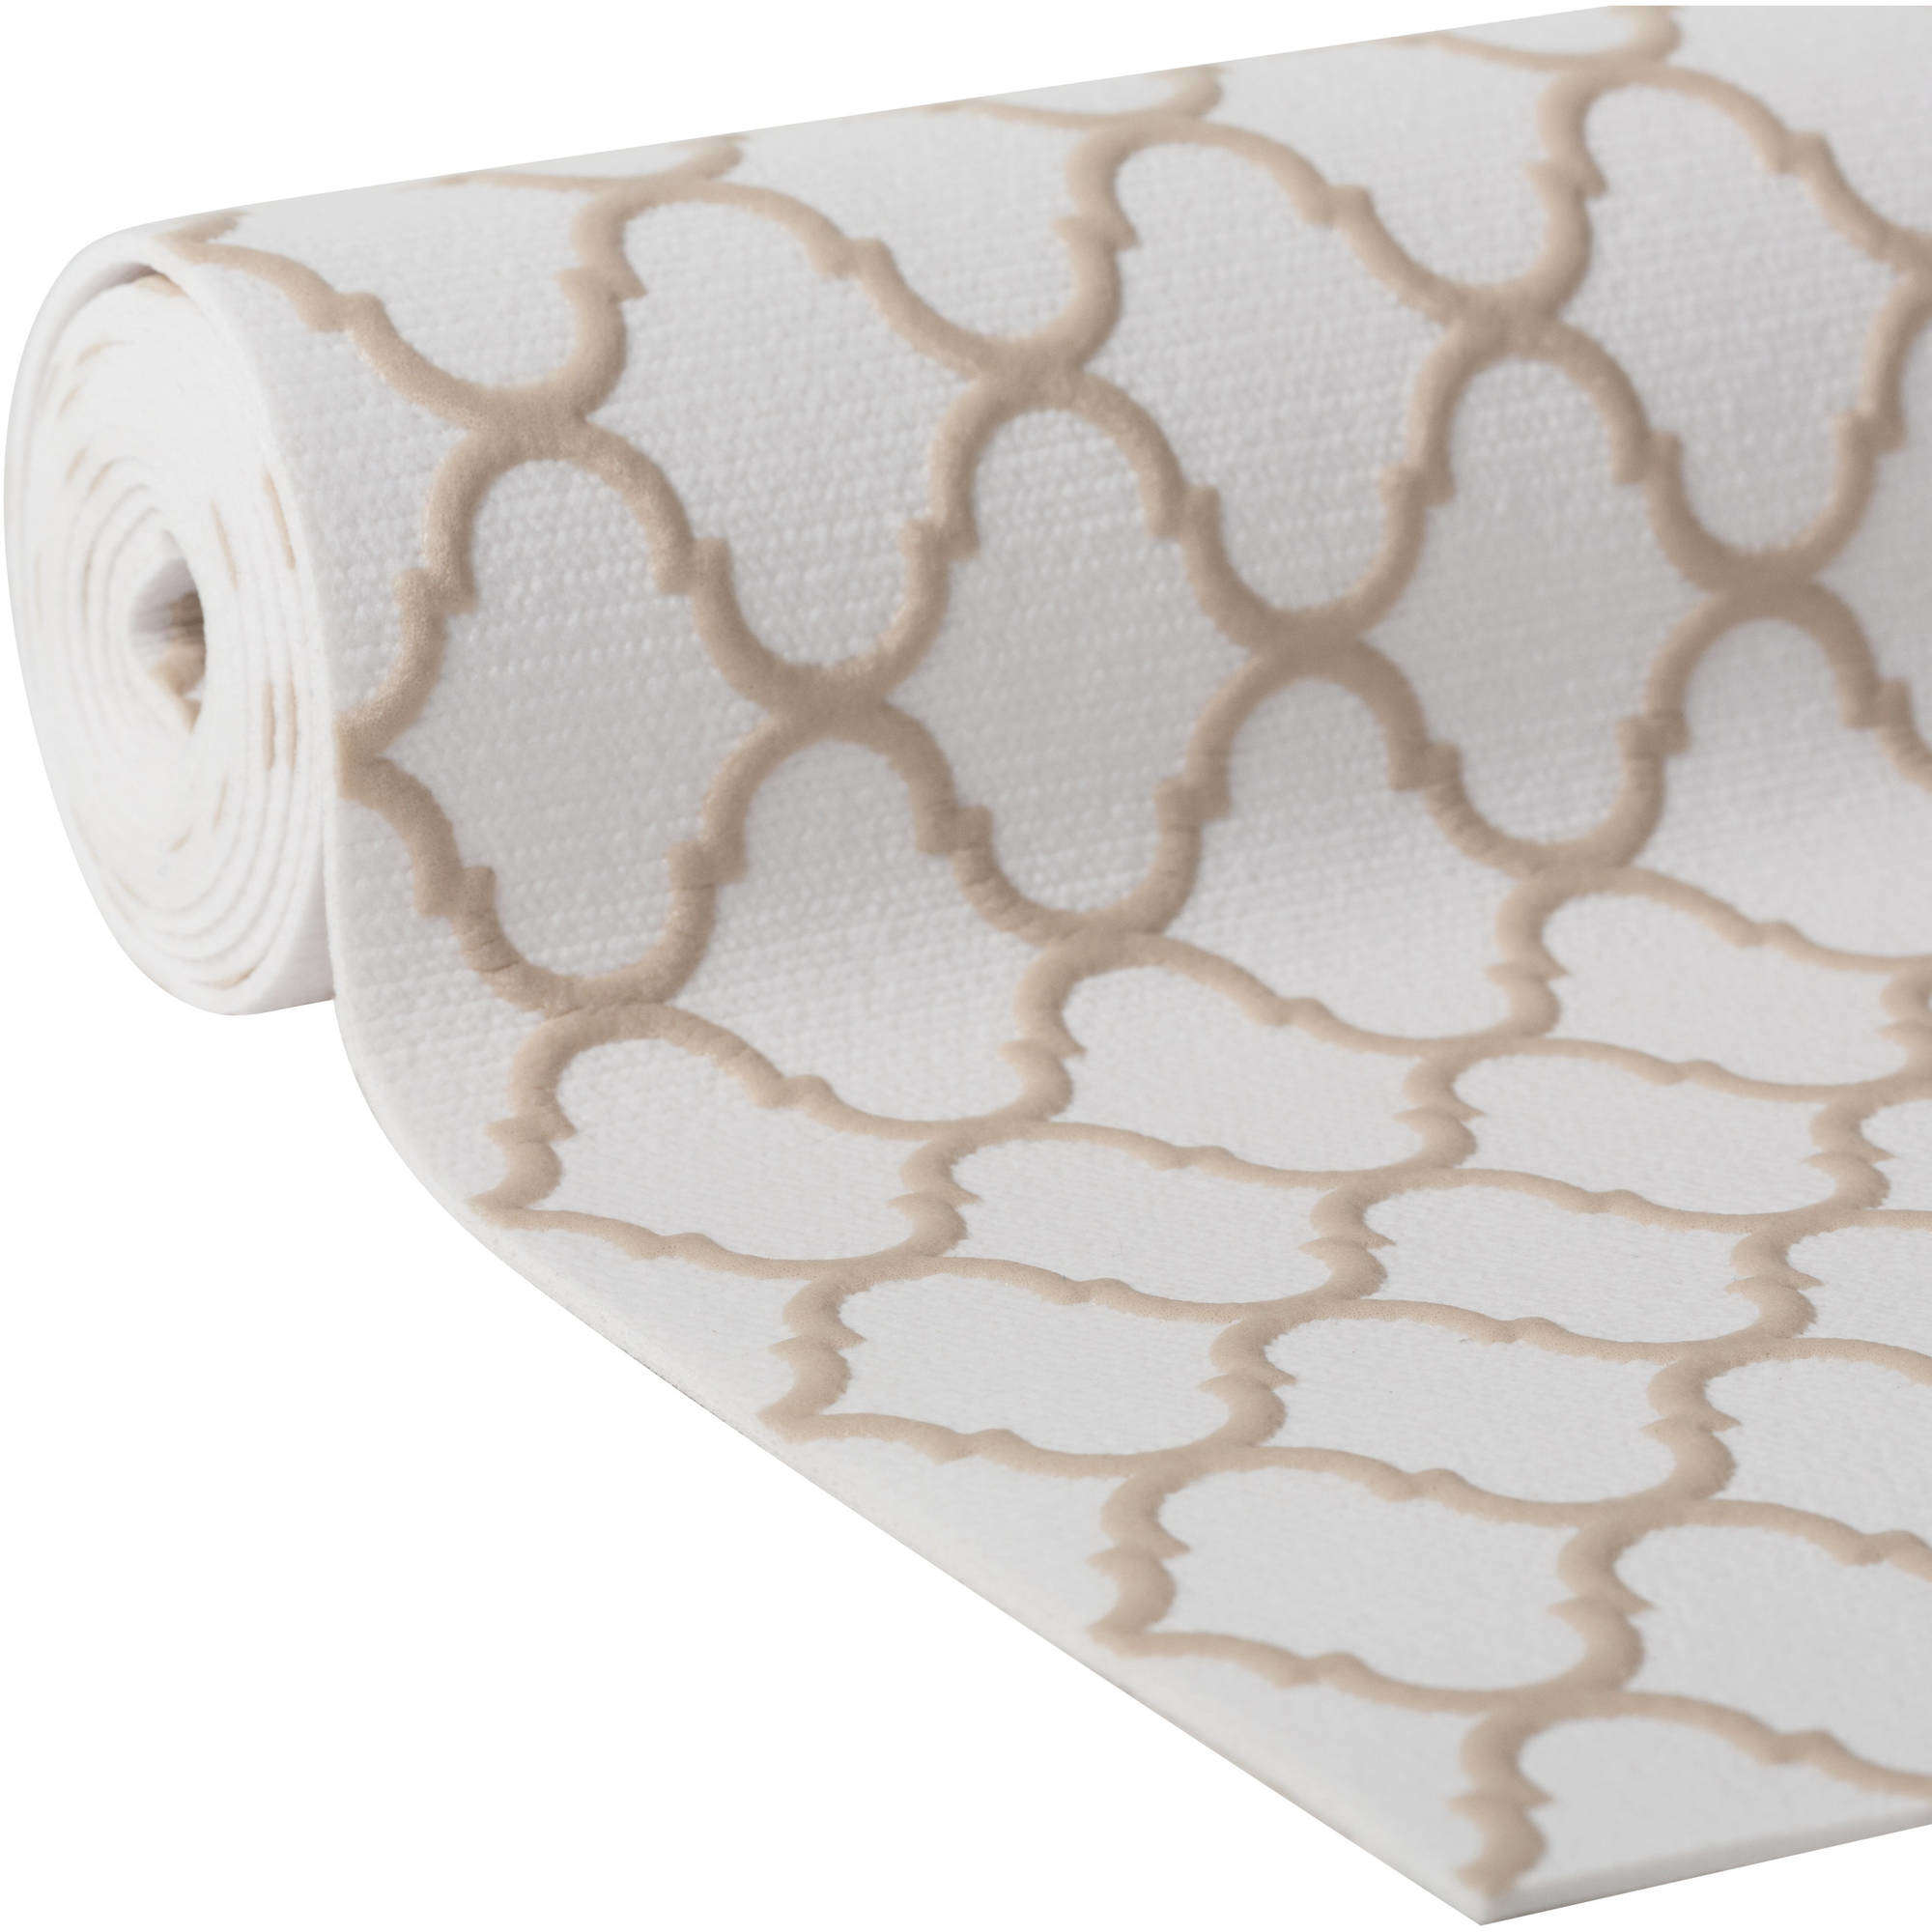 "Duck Brand Embossed Solid Grip Easy Liner Brand Shelf Liner, Taupe Quatrefoil, 20"" x 4'"